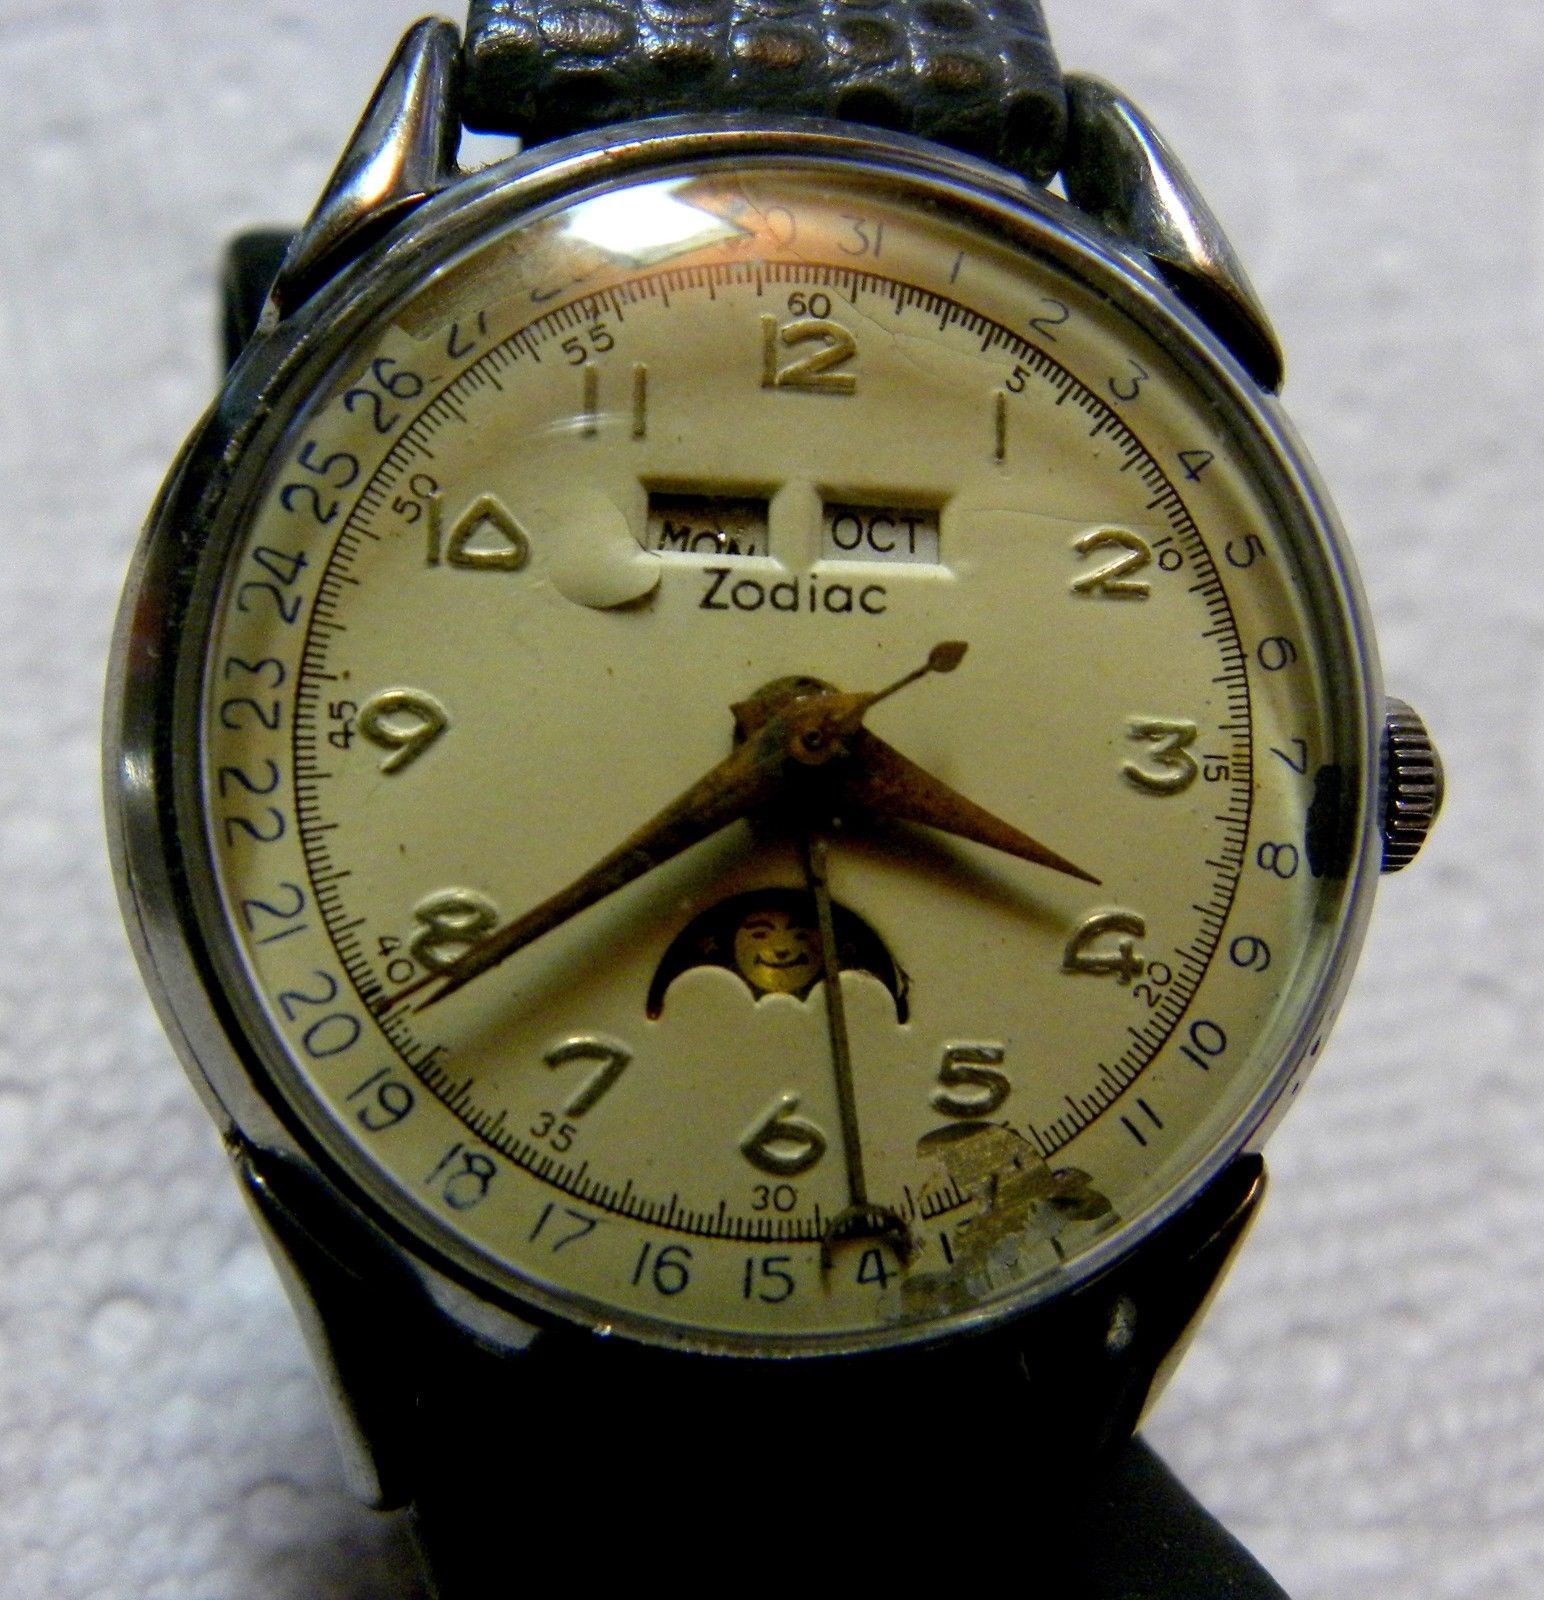 f52f400c2f7 Details about Zodiac Moon phase triple date vintage watch